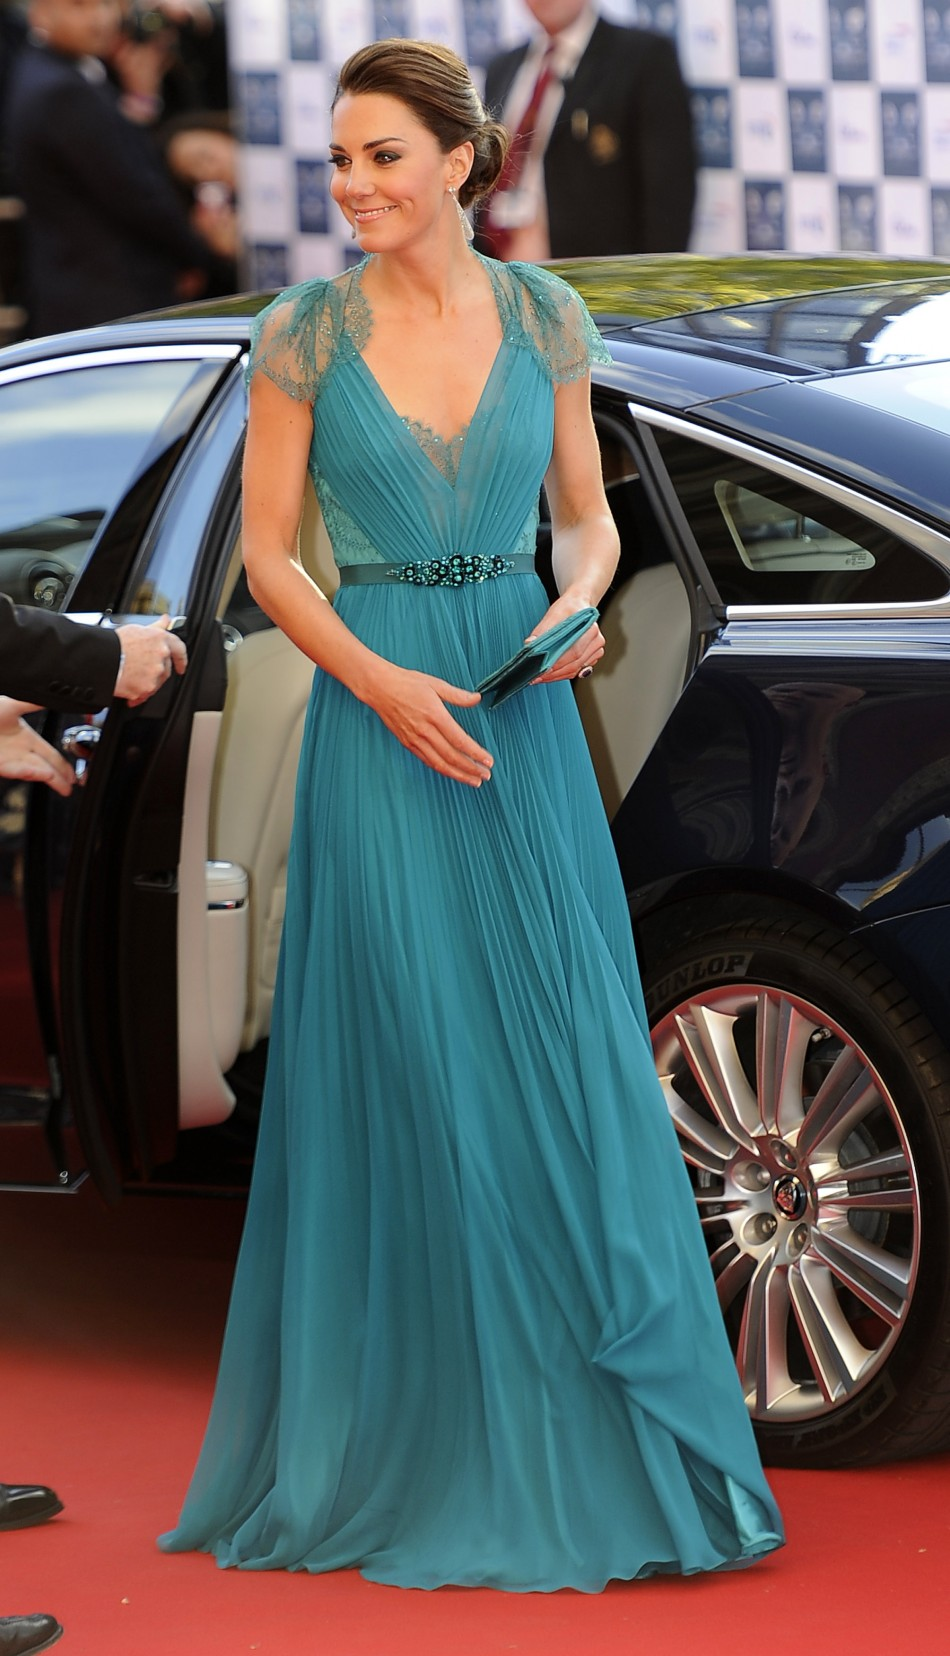 Britain's Catherine, Duchess of Cambridge arrives for the 'Our Greatest Team Rises' event to celebrate TeamGB and ParalympicsGB at the Royal Albert Hall, in central London